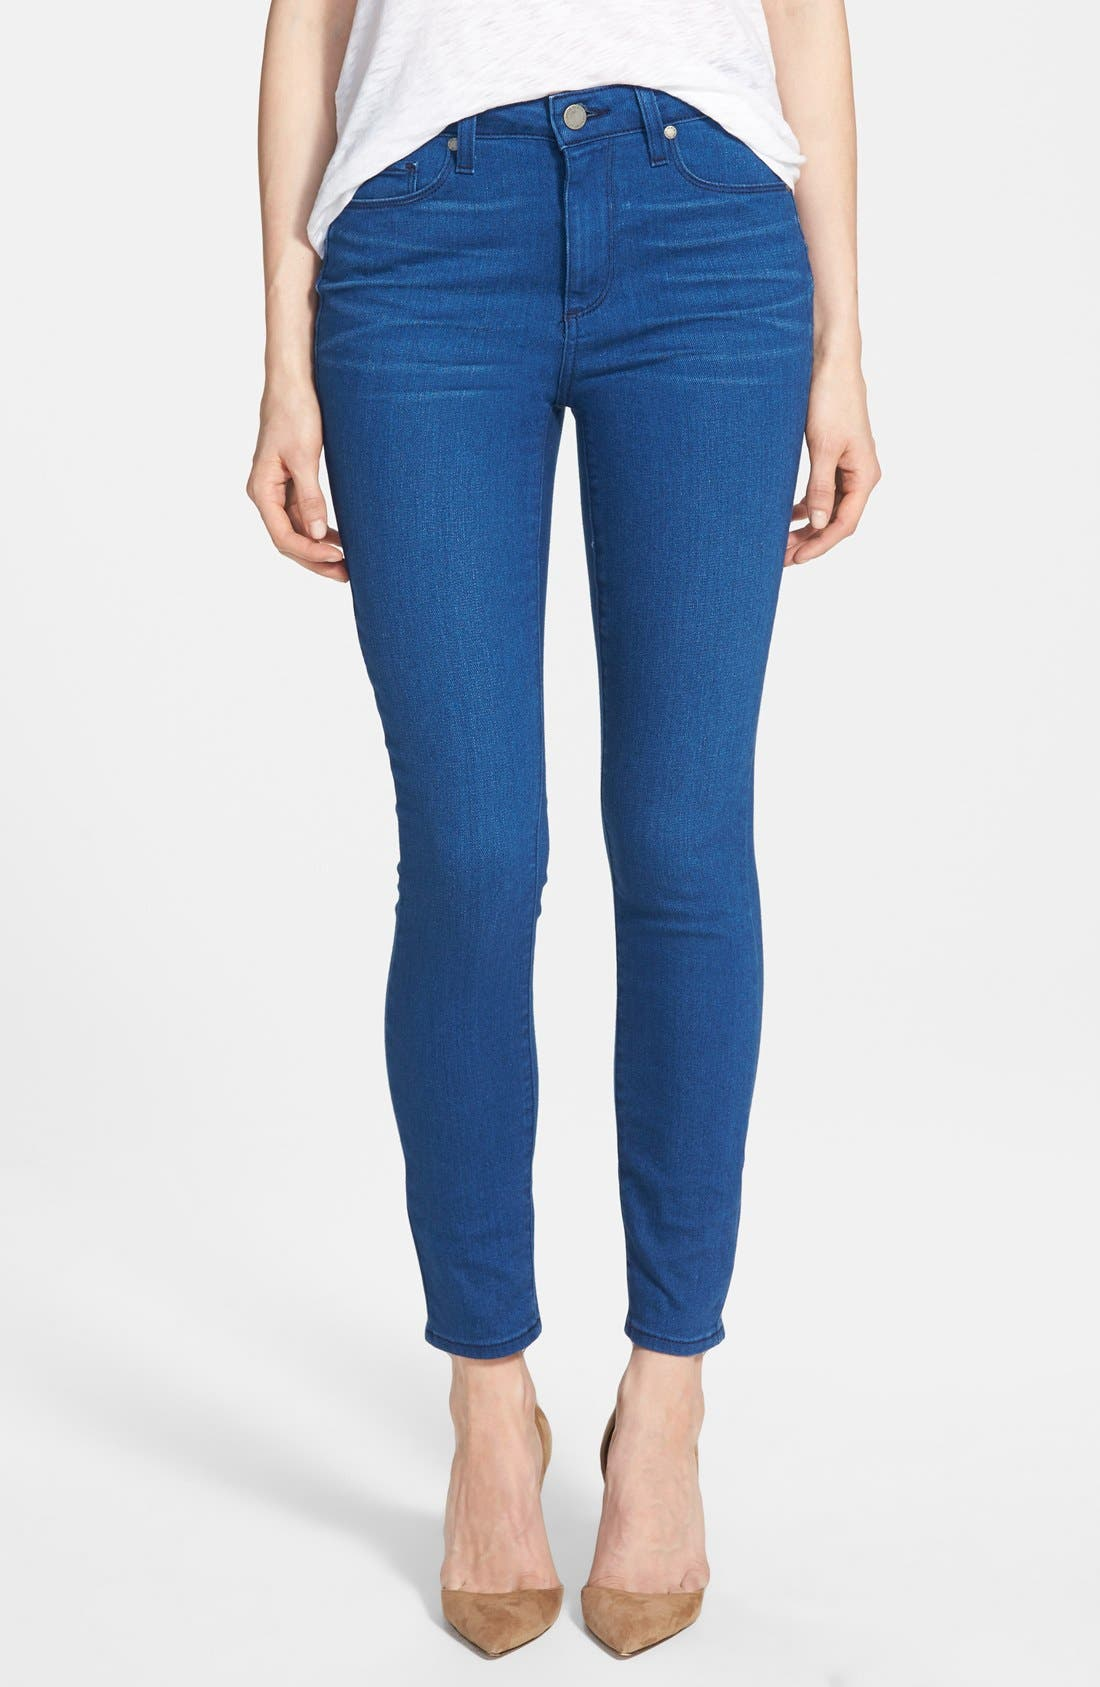 Alternate Image 1 Selected - Paige Denim 'Hoxton' Ankle Skinny Jeans (Frenchie)